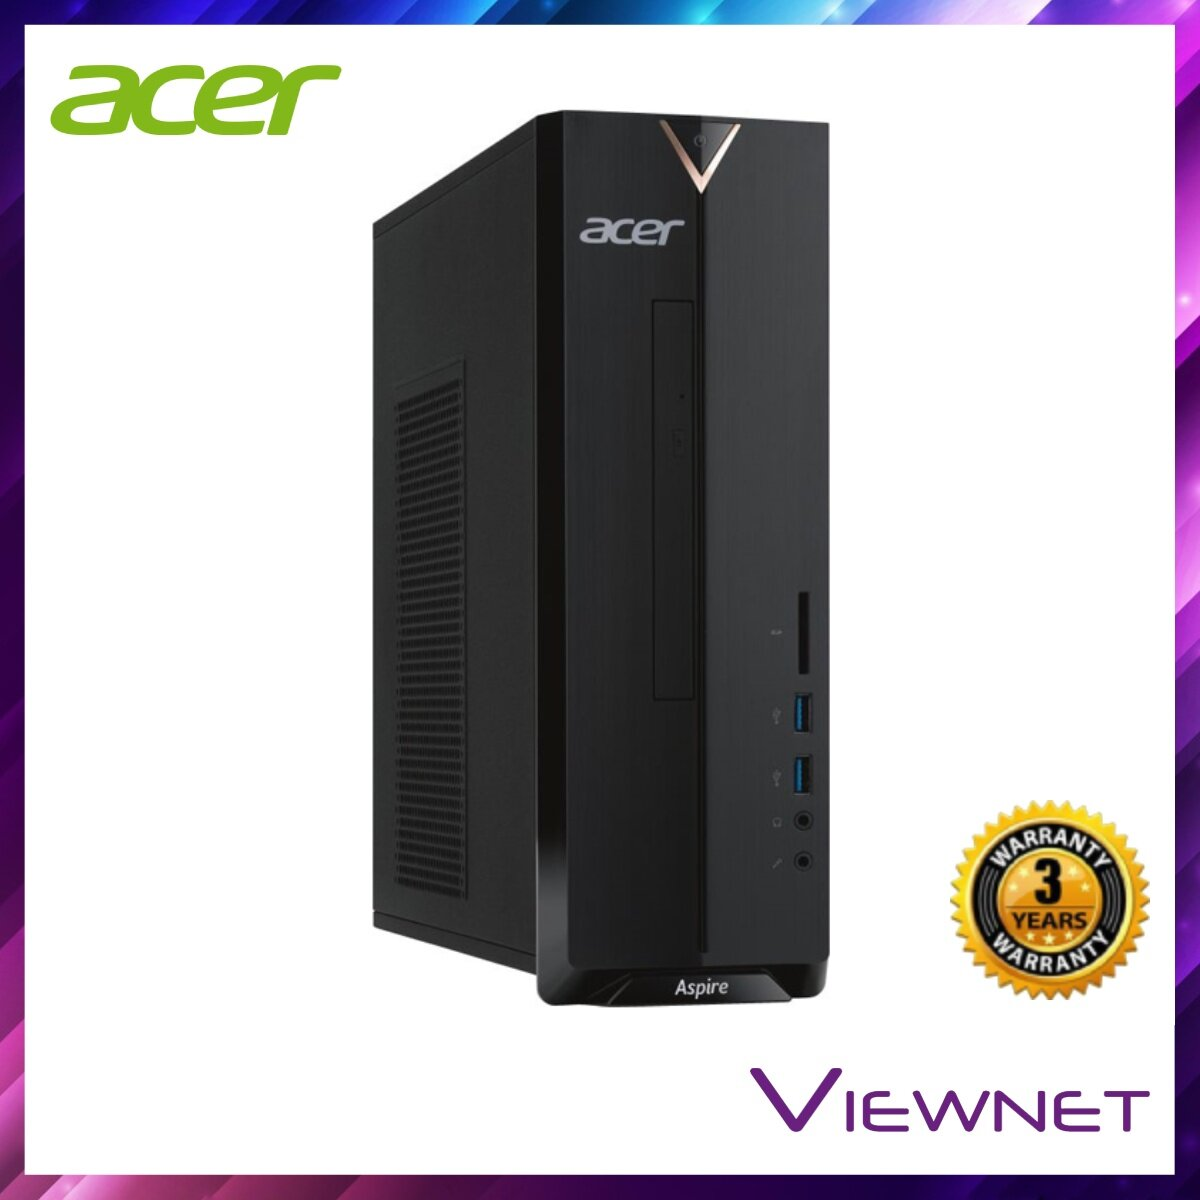 Acer Aspire XC830-5005W10 Desktop PC (DT.B9VSM.001), Intel Pentum QC J5005, 4GB DDR4, 1TB, DVDRW, Intel HD, Windows 10